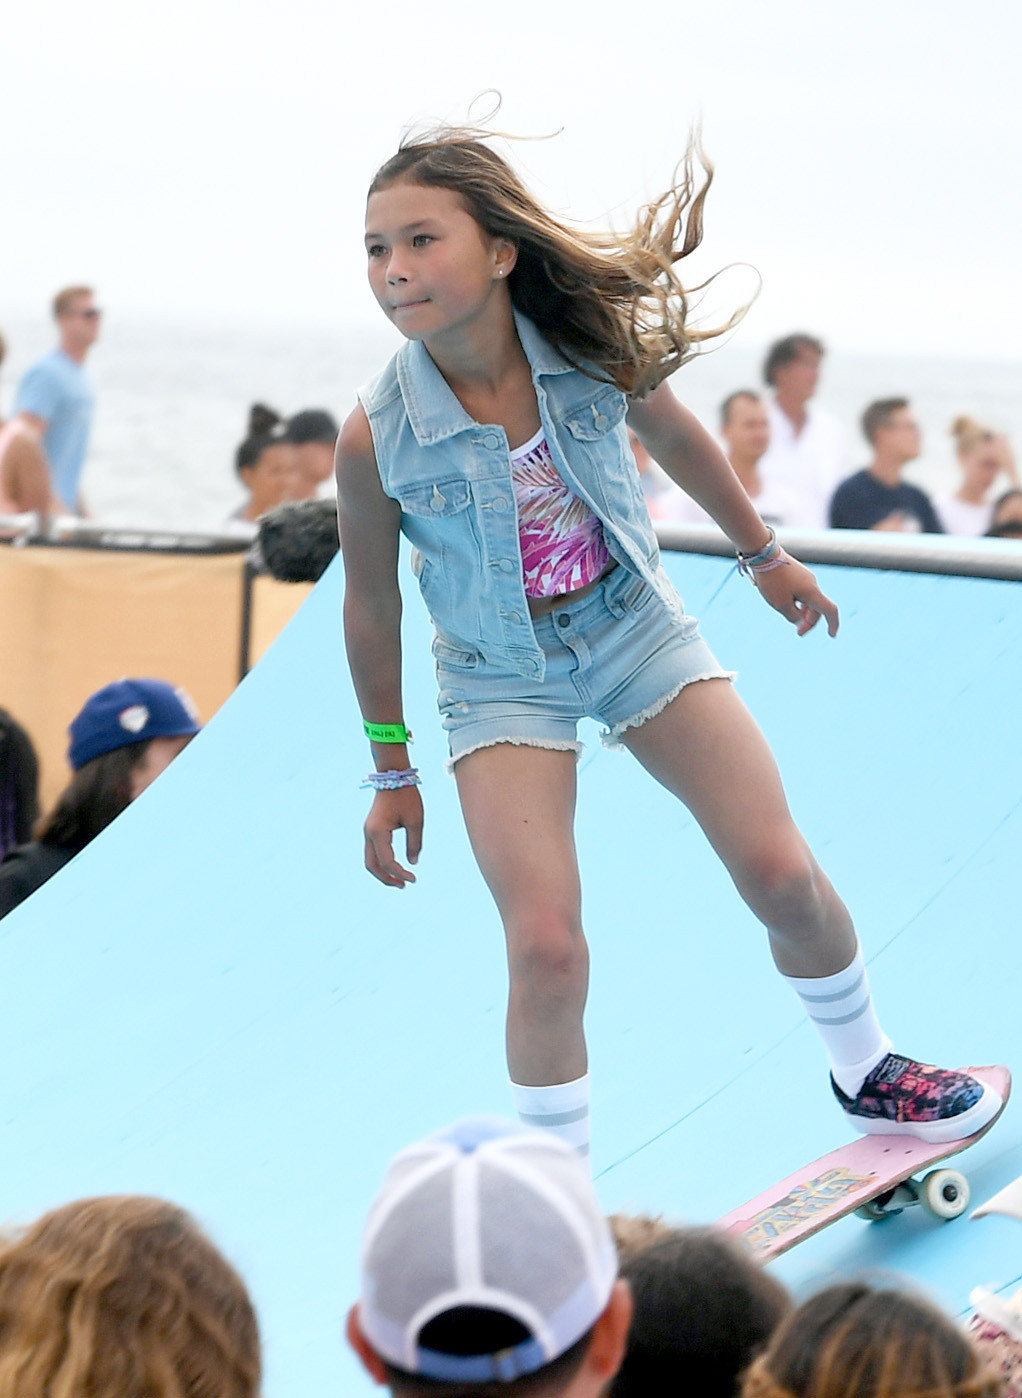 Sky is the limit for 11-year-old skateboarder looking beyond the Olympics